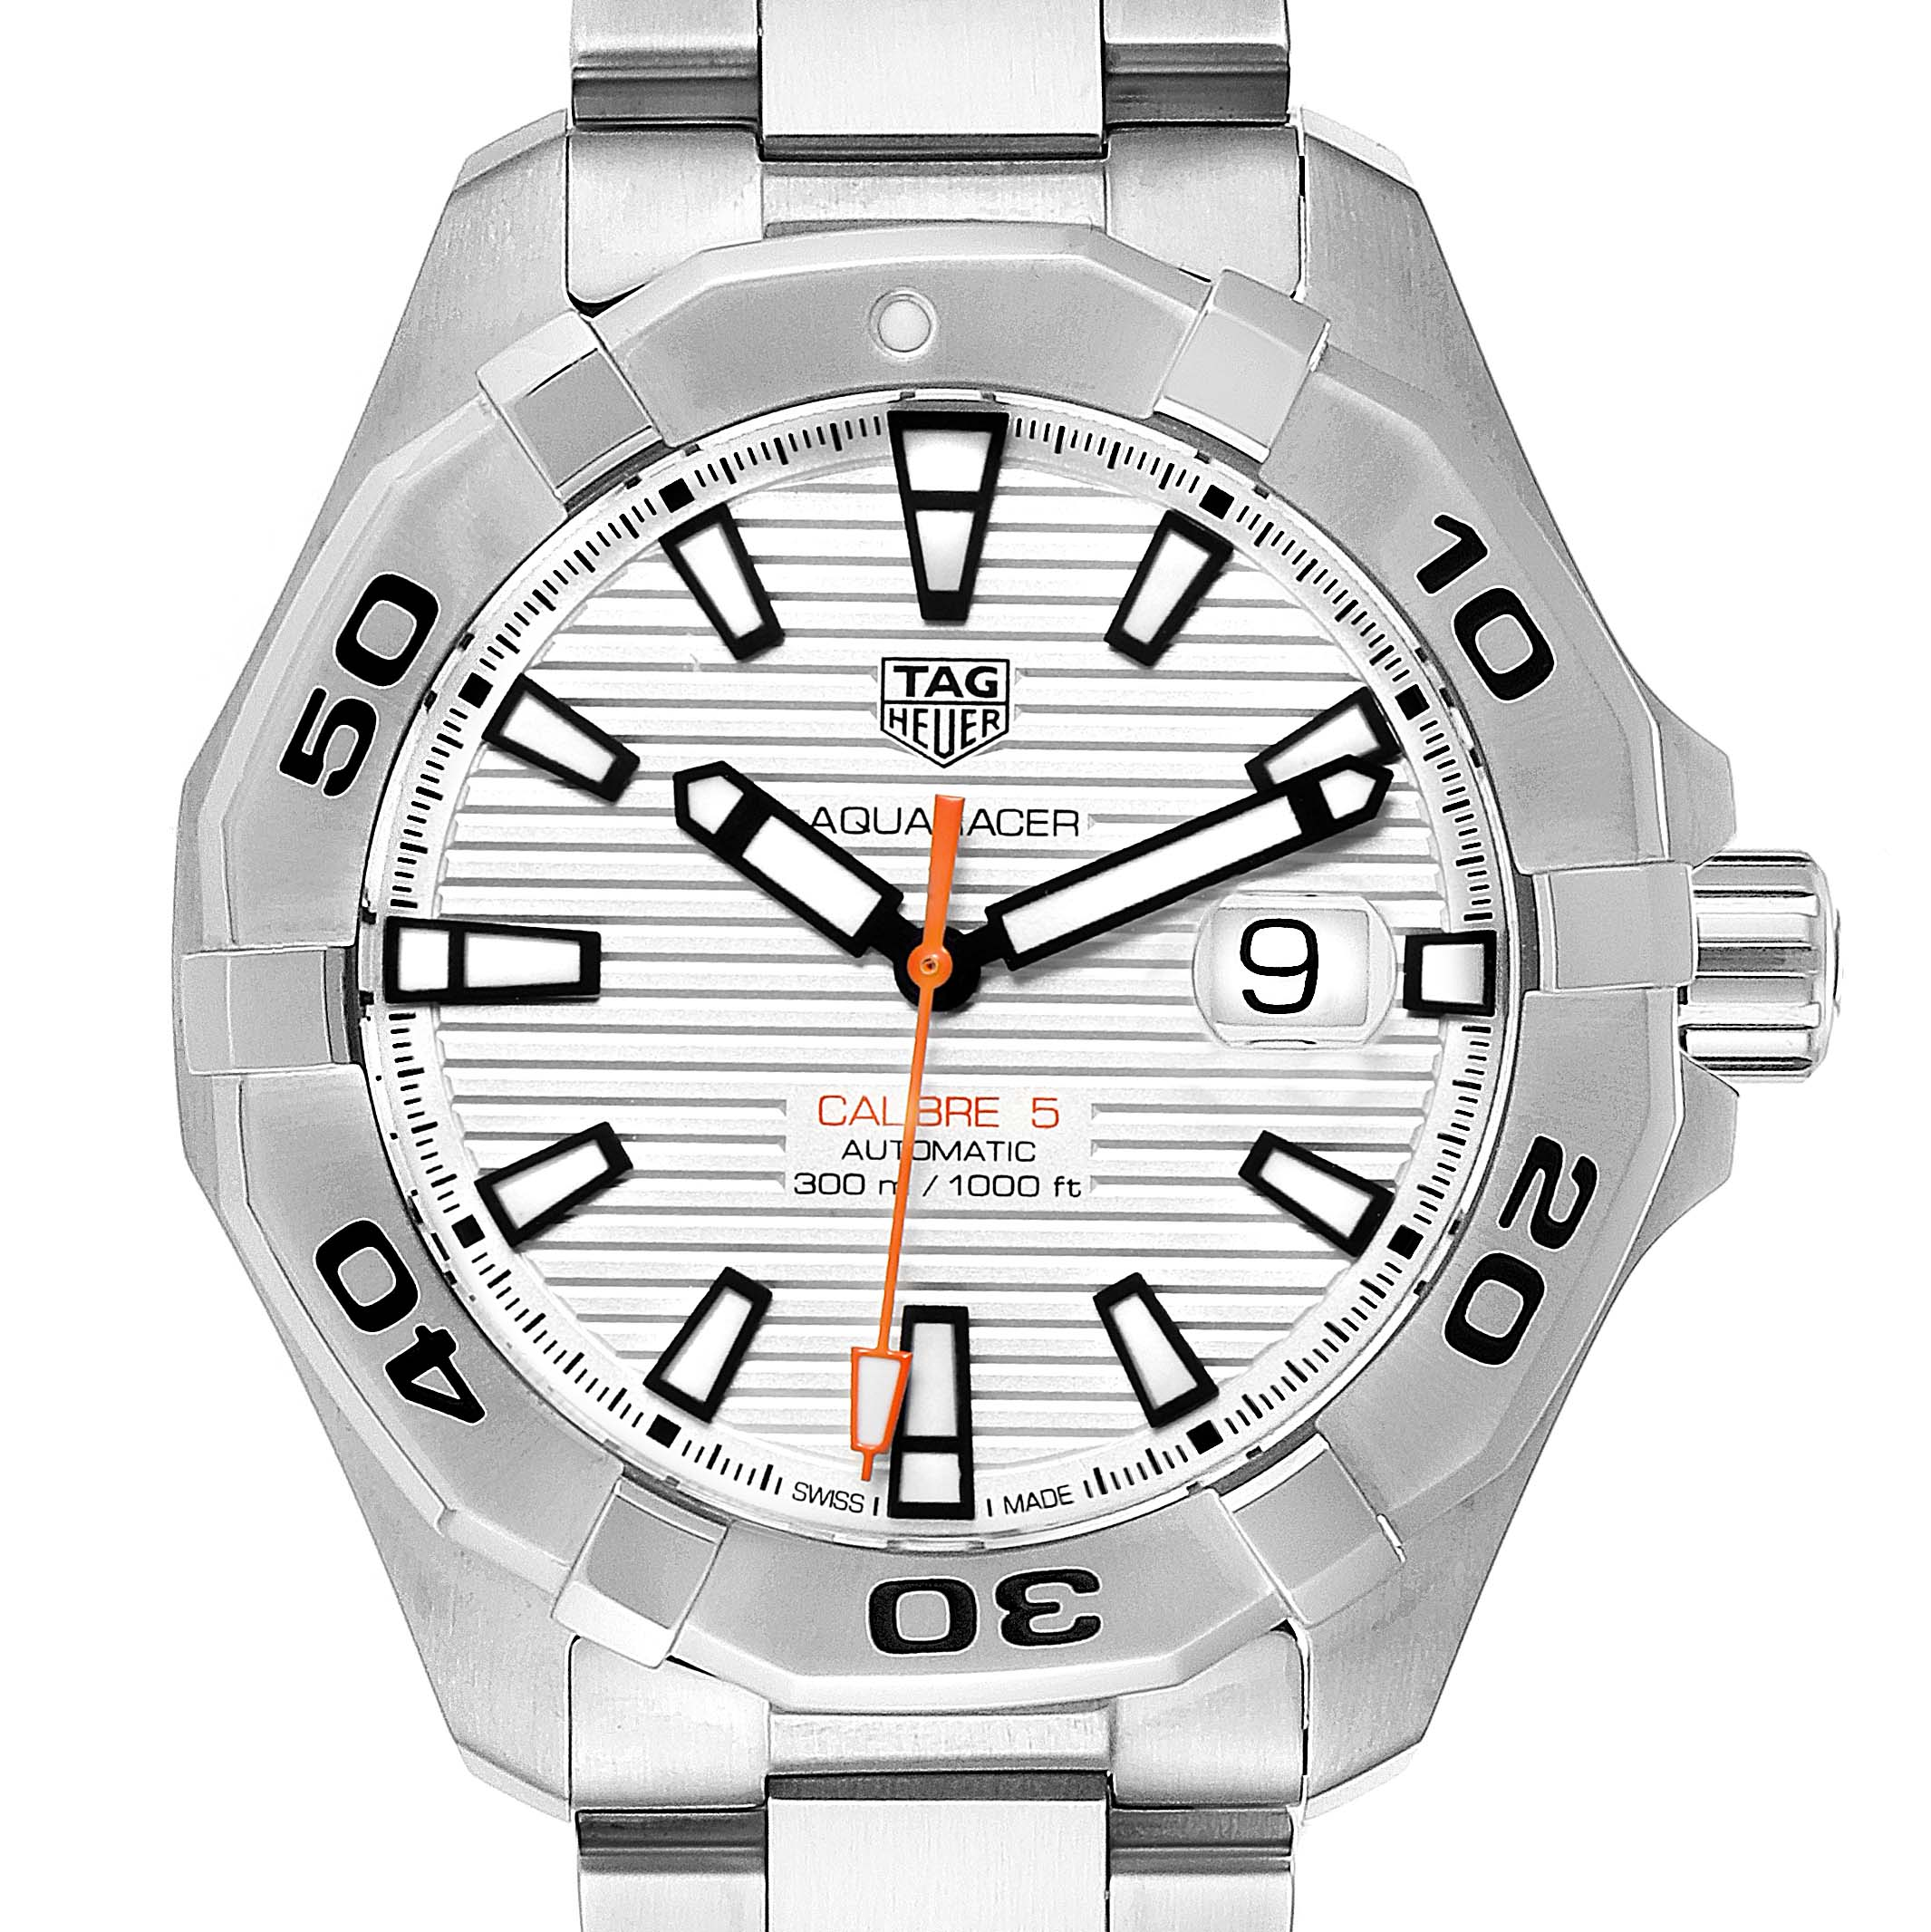 Photo of Tag Heuer Aquaracer White Dial Steel Mens Watch WAY2013 Unworn